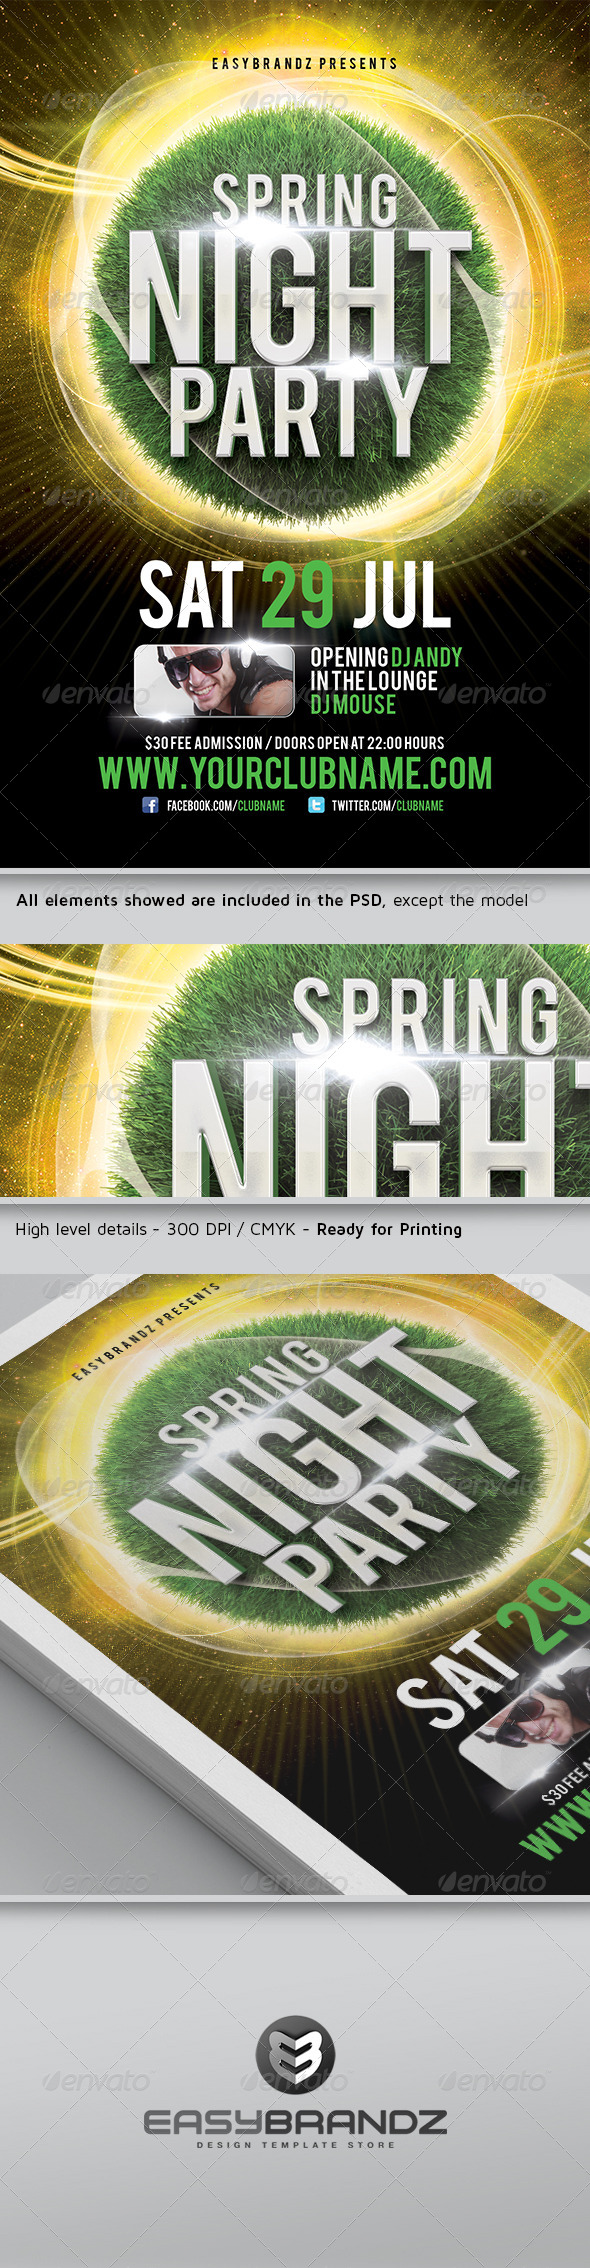 Spring Night Flyer Template - Events Flyers